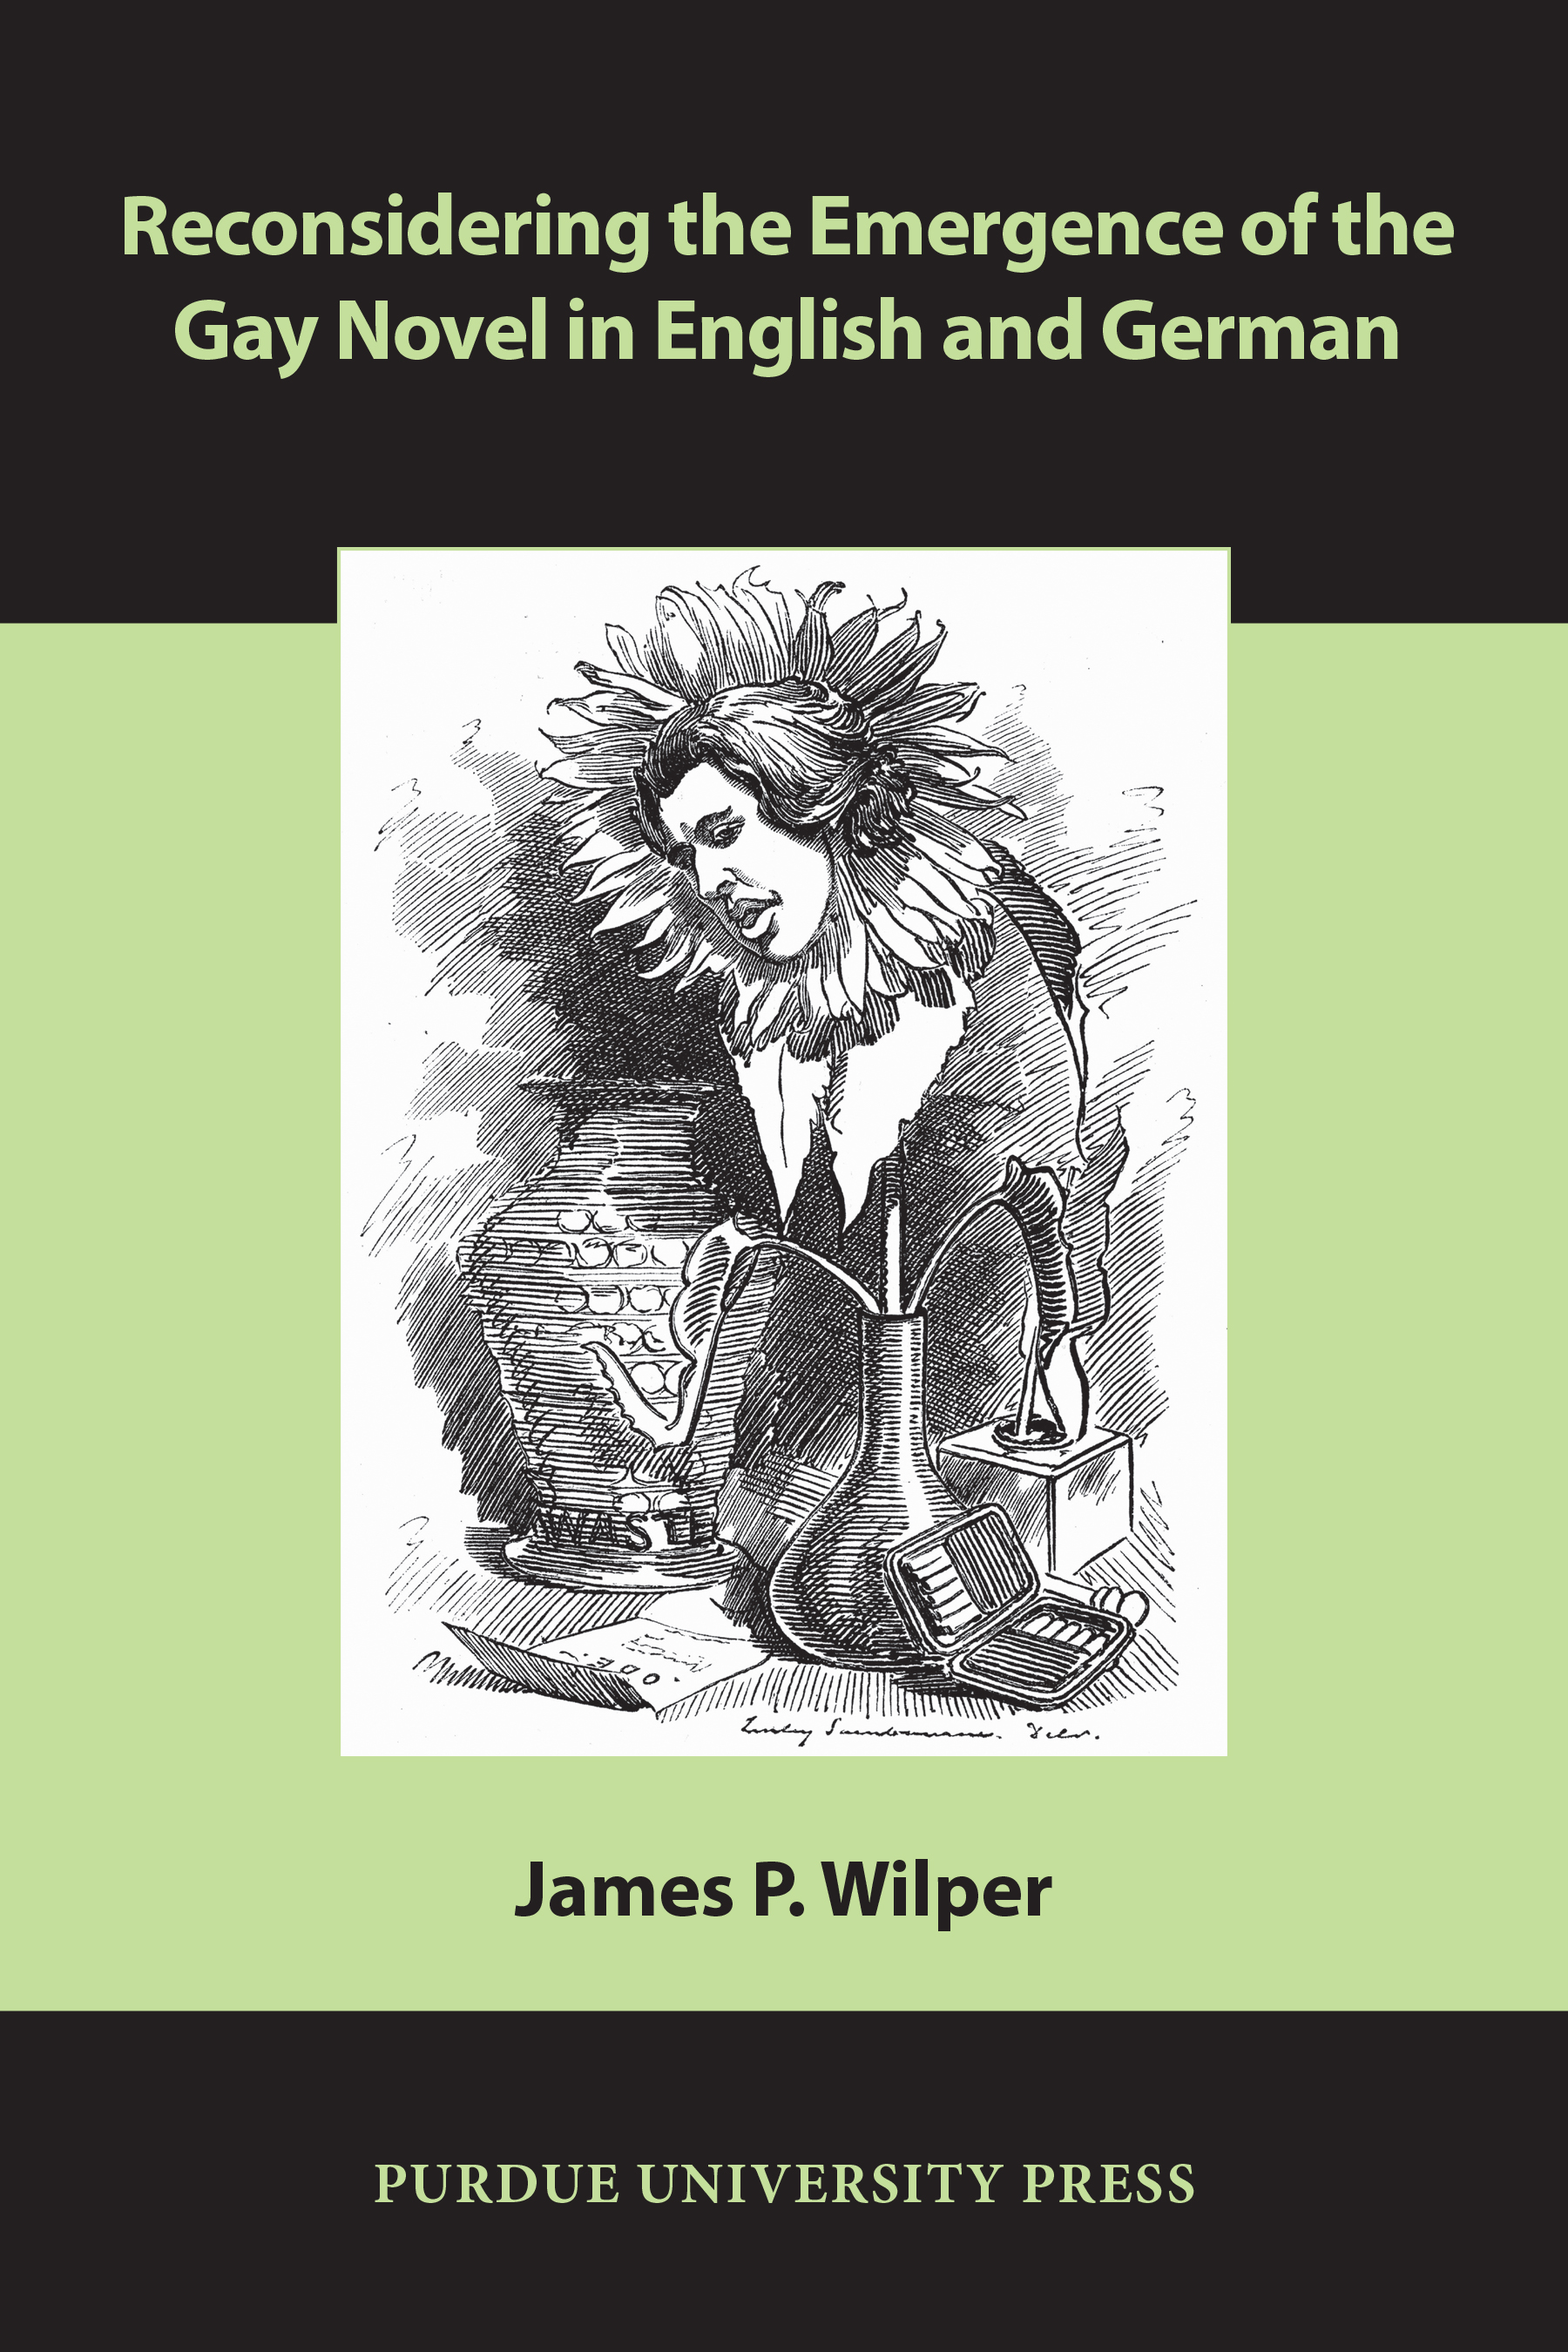 Wilper Front Cover.indd